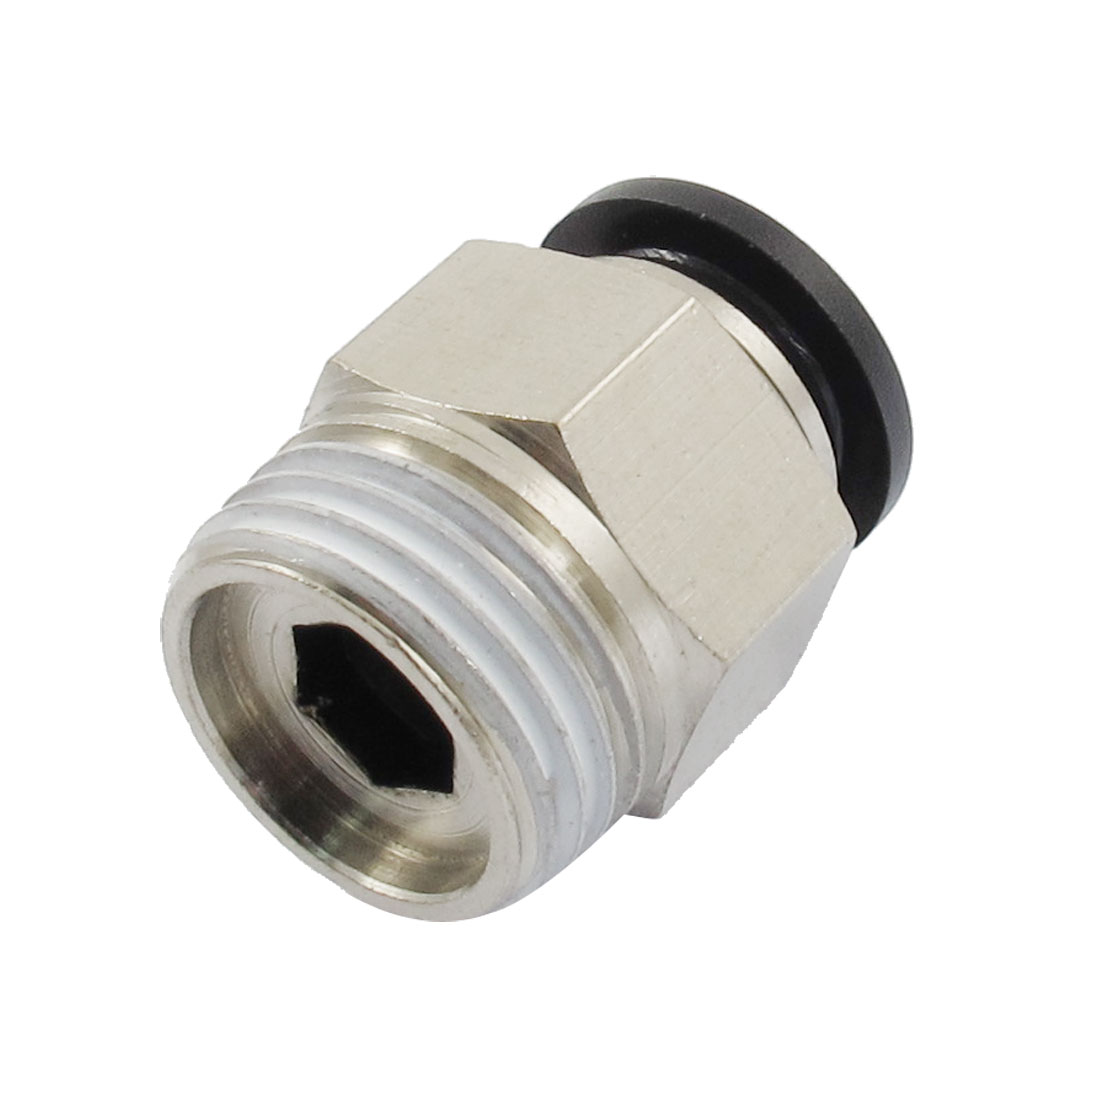 "1/2"" PT Male Thread 12mm Push In Joint Pneumatic Connector Quick Fitting"